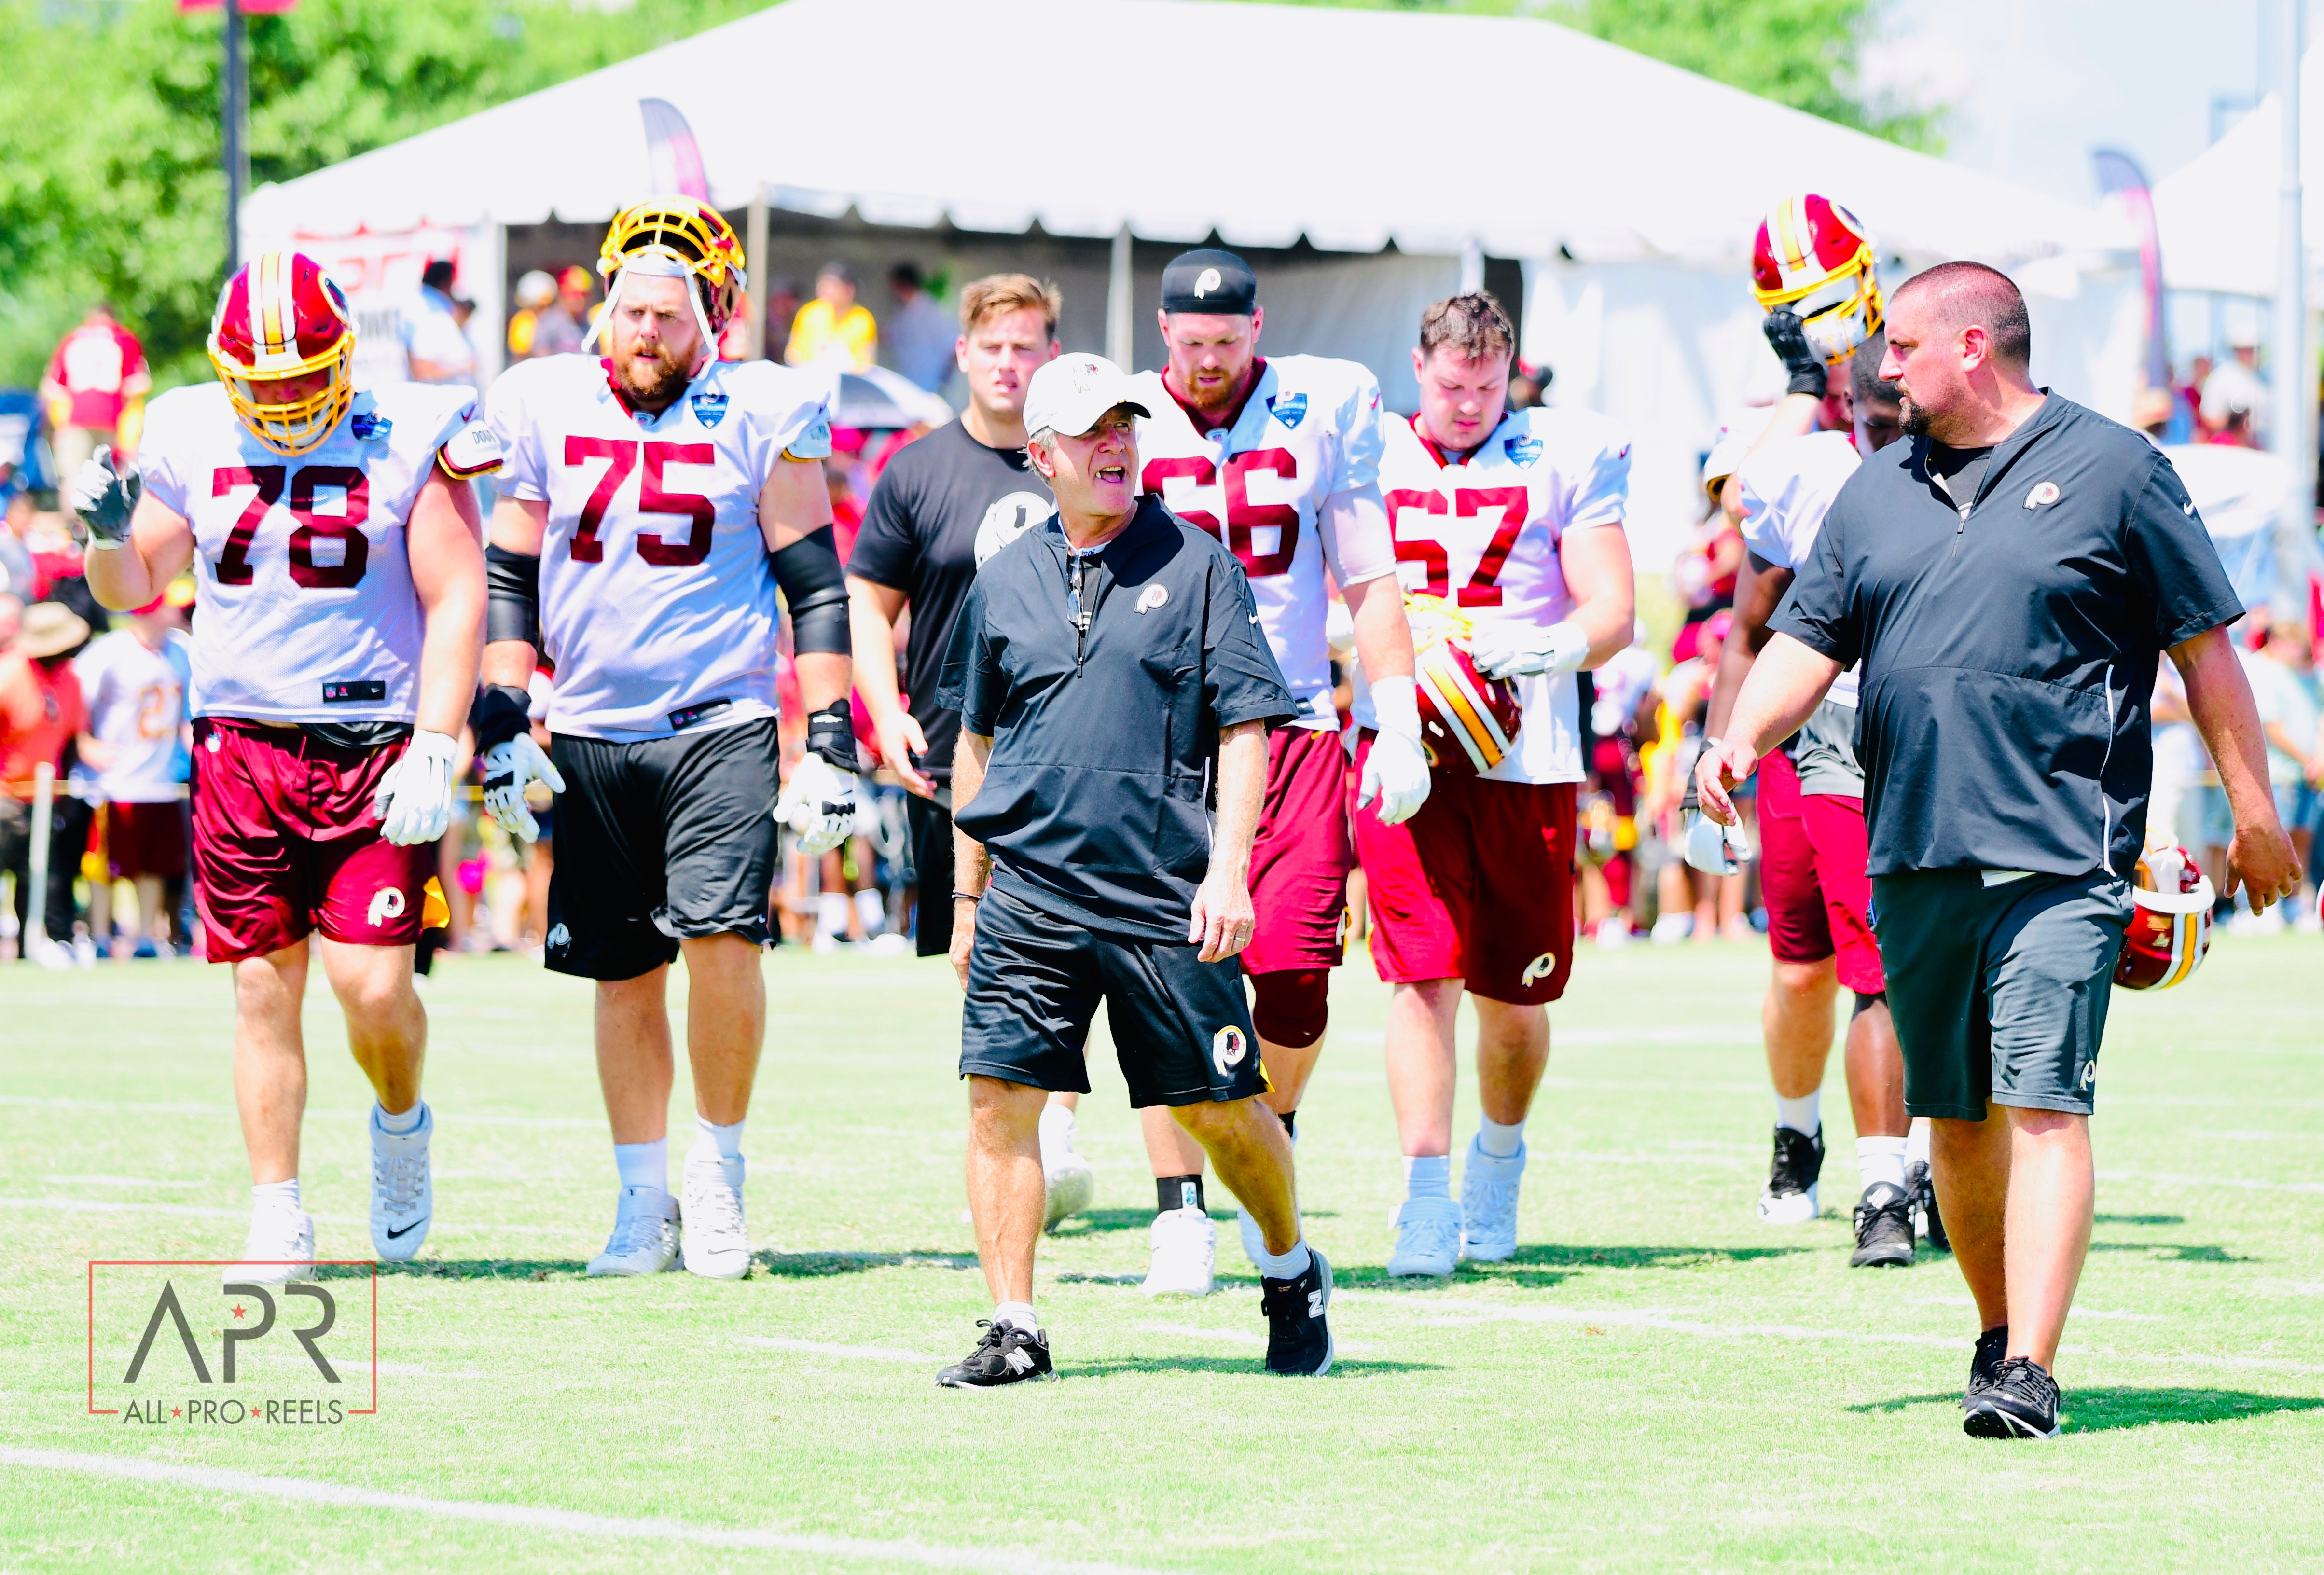 Redskins Training Camp: Day 3 📸